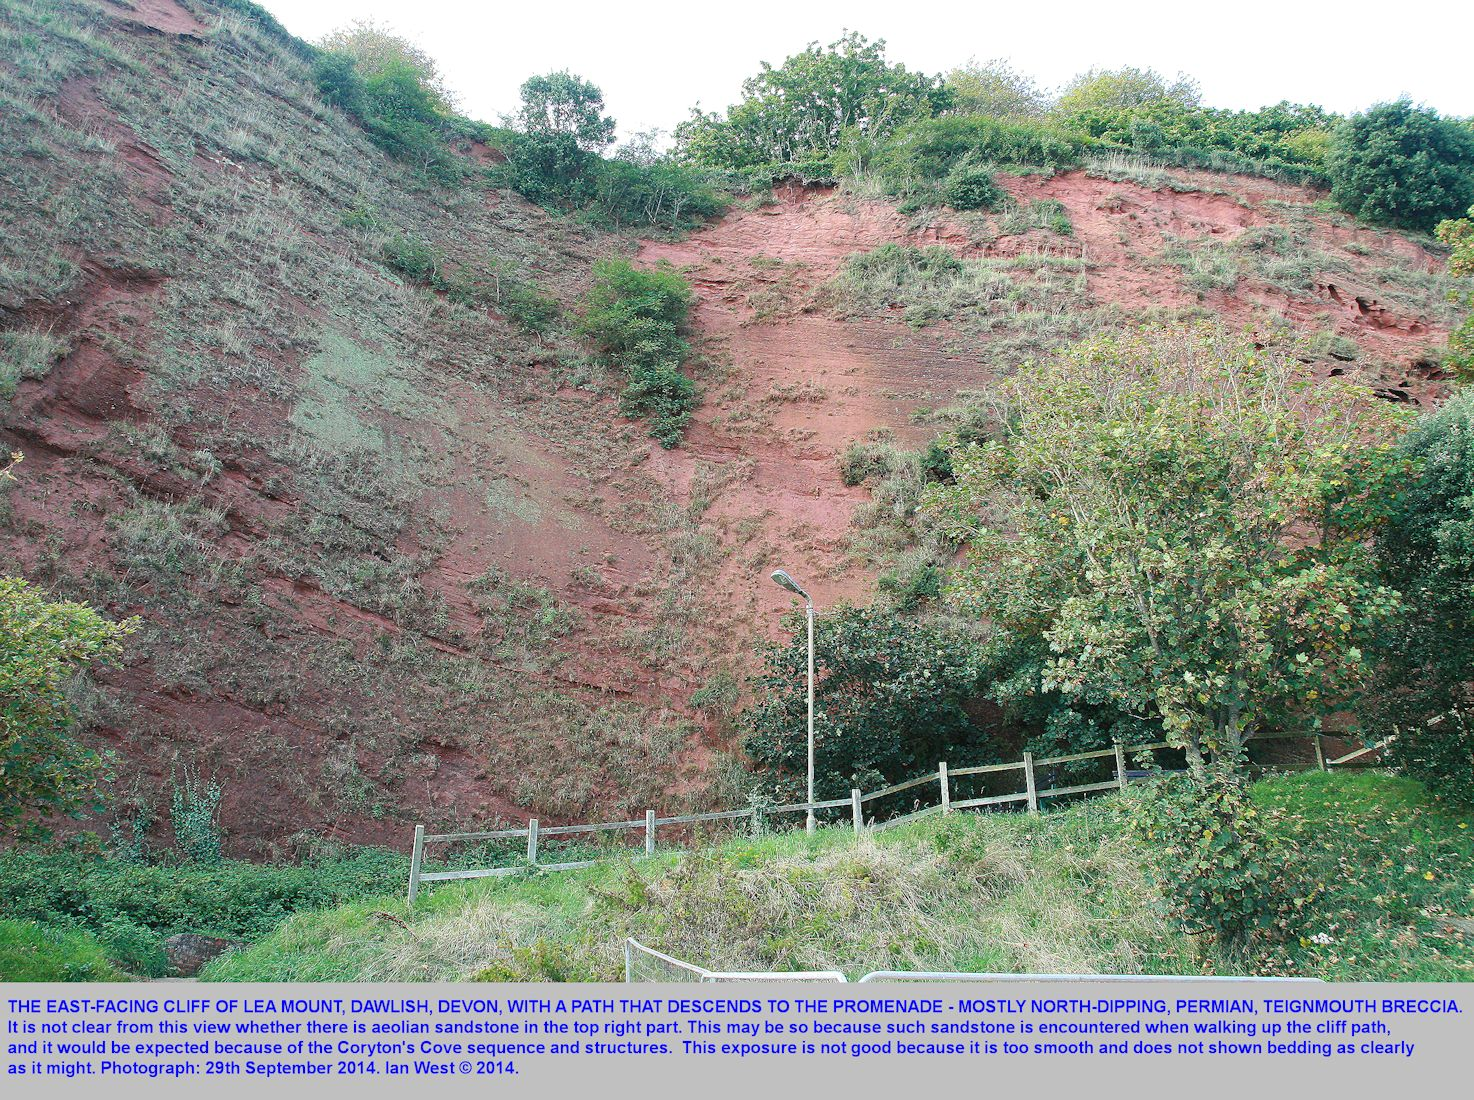 A smooth east-facing cliff of mainly Teignmouth Breccia (Permian) at Lea Mount, Dawlish,  Devon